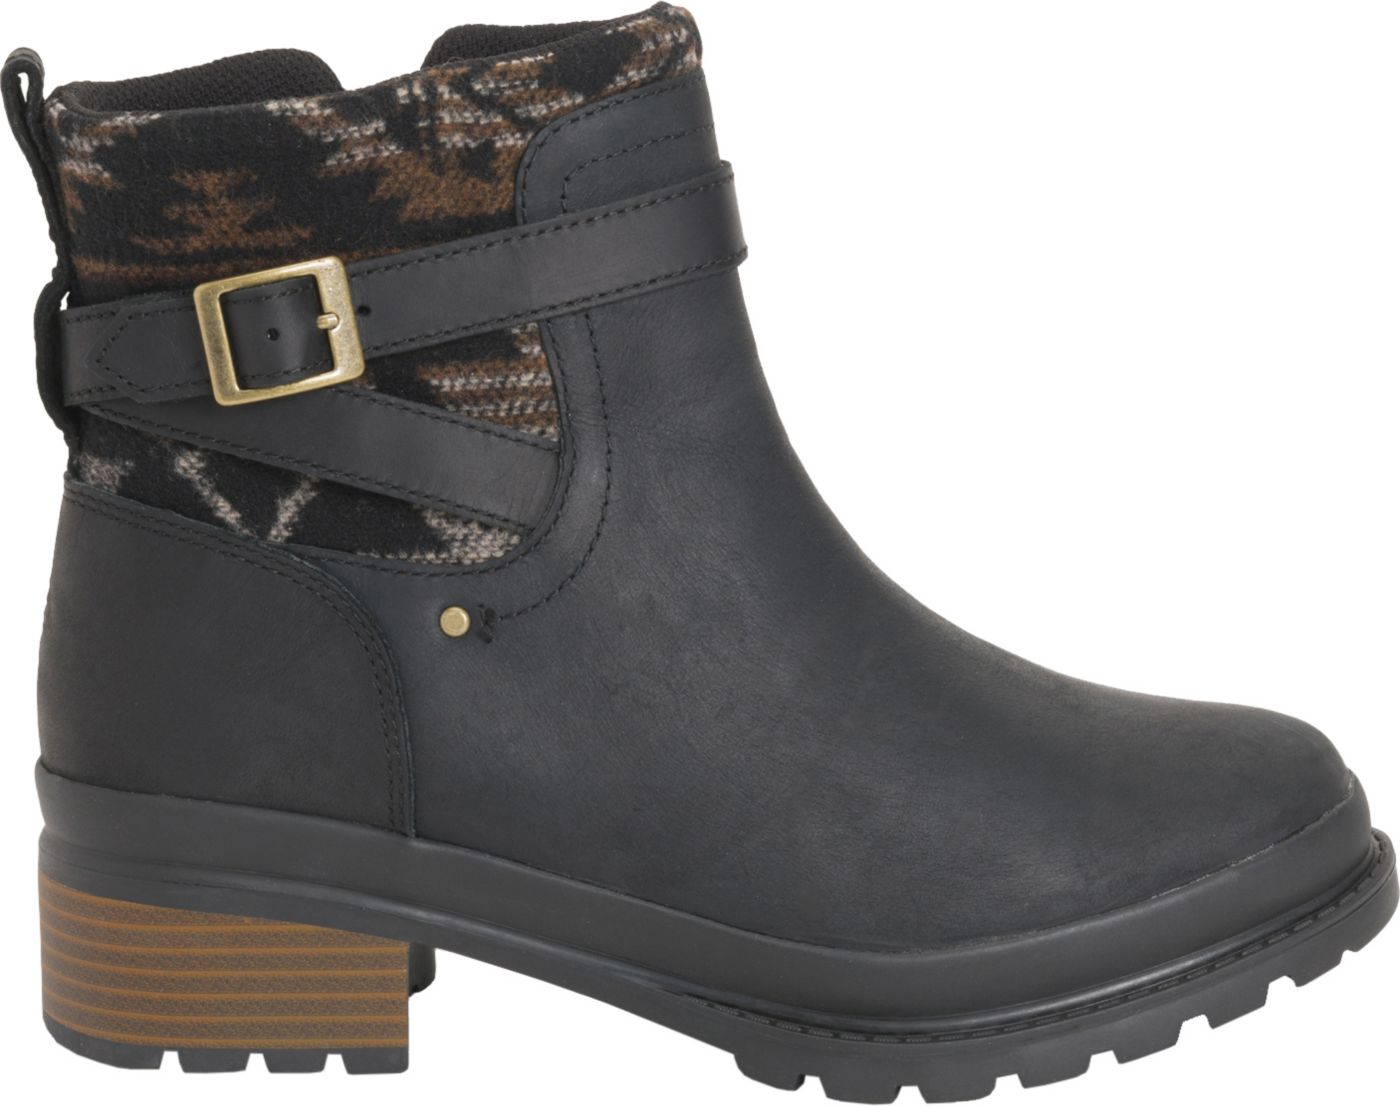 Muck Boots Women's Liberty Ankle Zip Rubber Boots